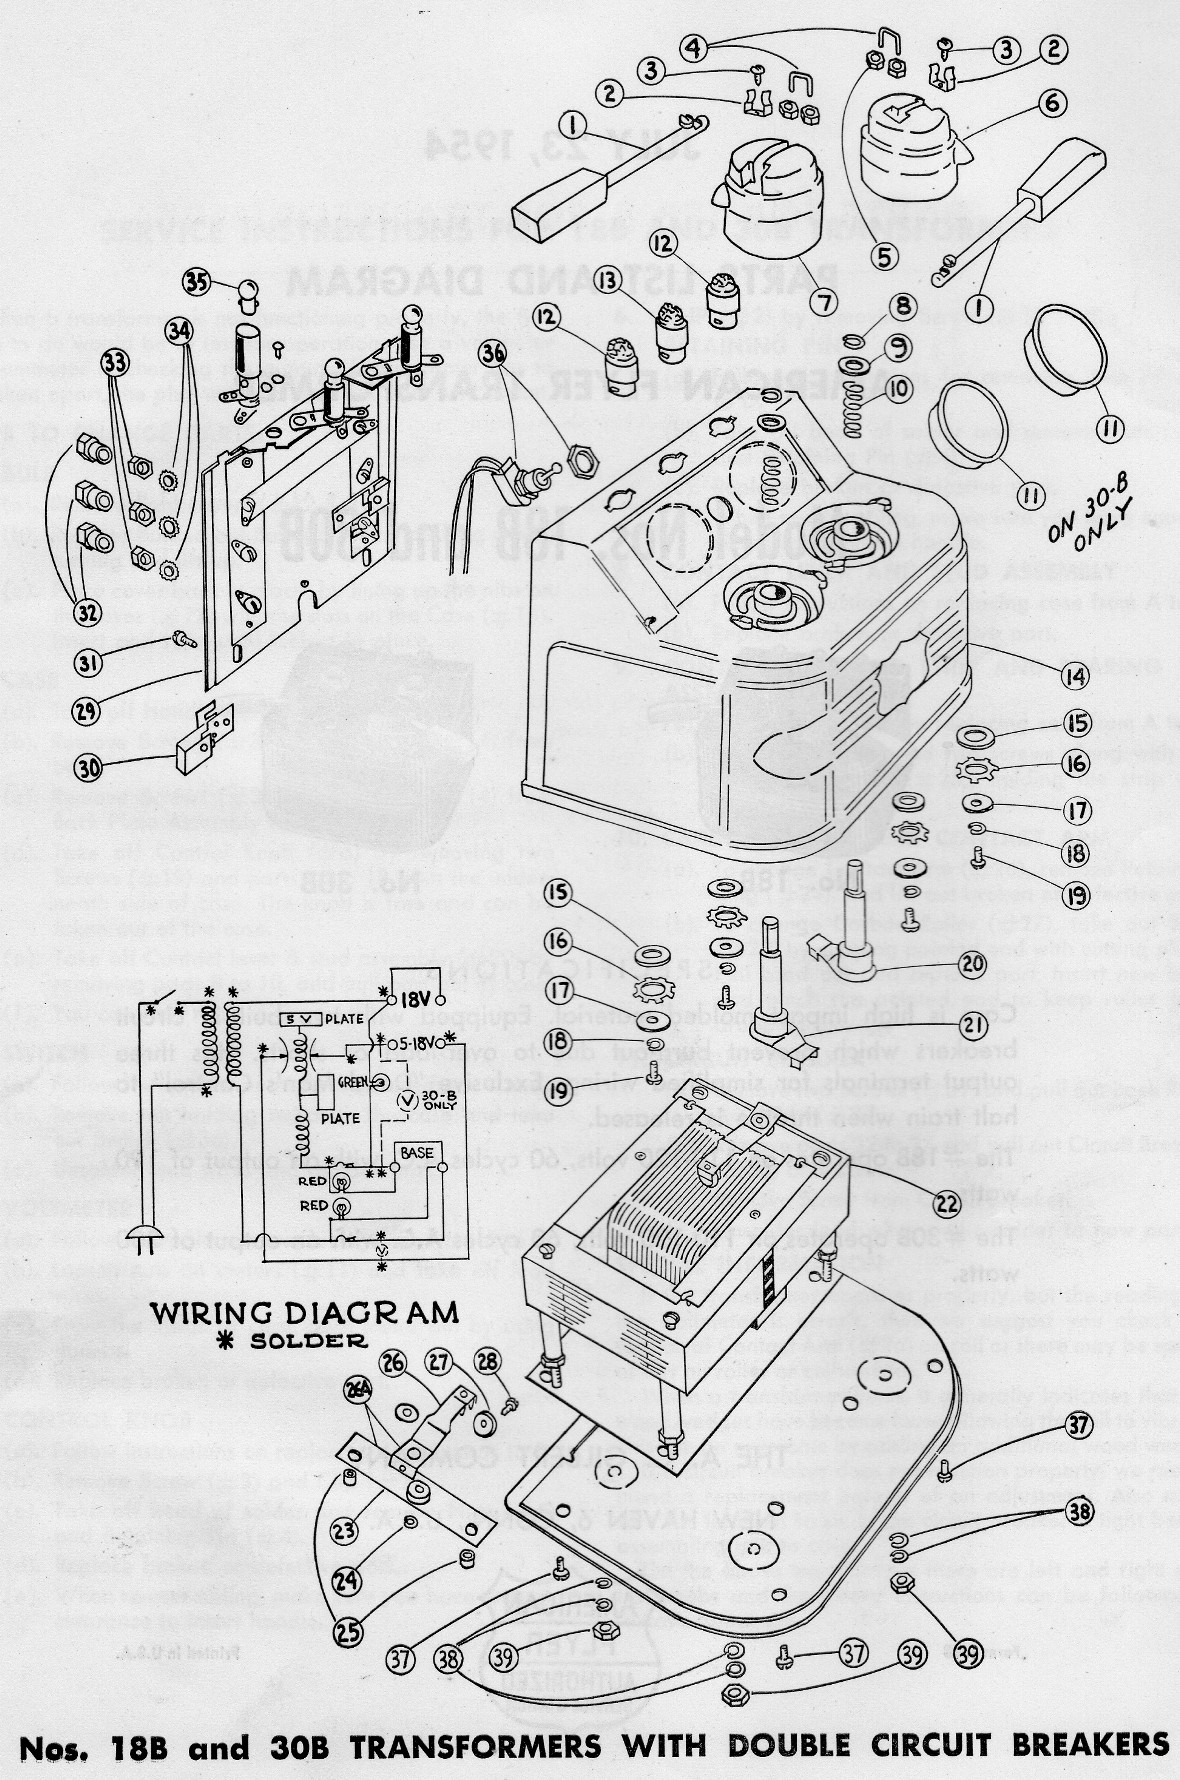 American Flyer Wiring Diagrams : 30 Wiring Diagram Images